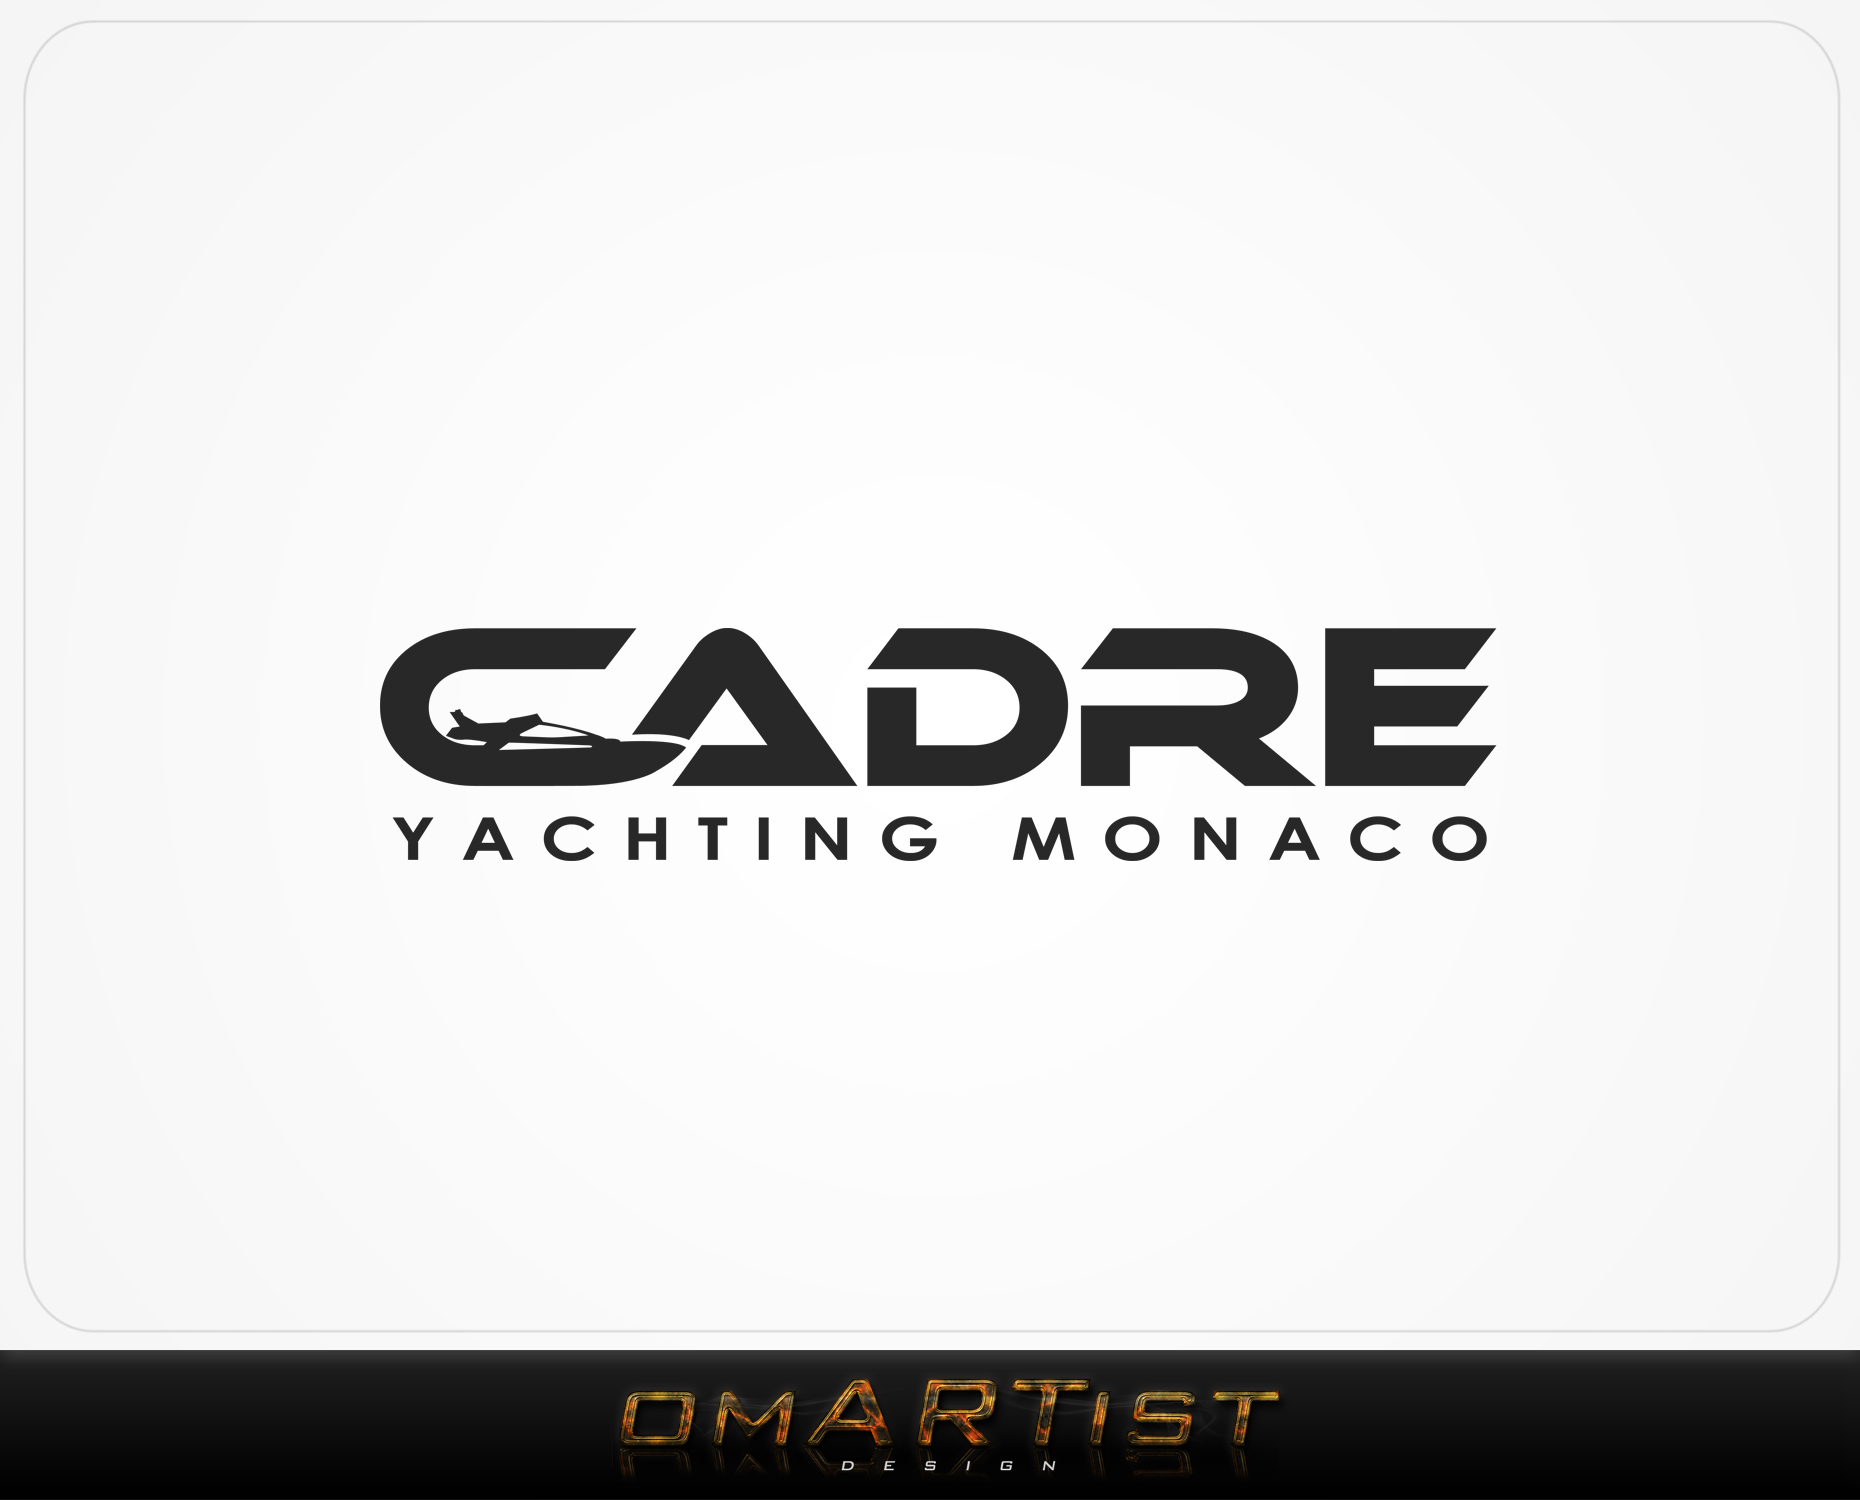 Logo Design by omARTist - Entry No. 415 in the Logo Design Contest New Logo Design for Cadre Yachting Monaco.